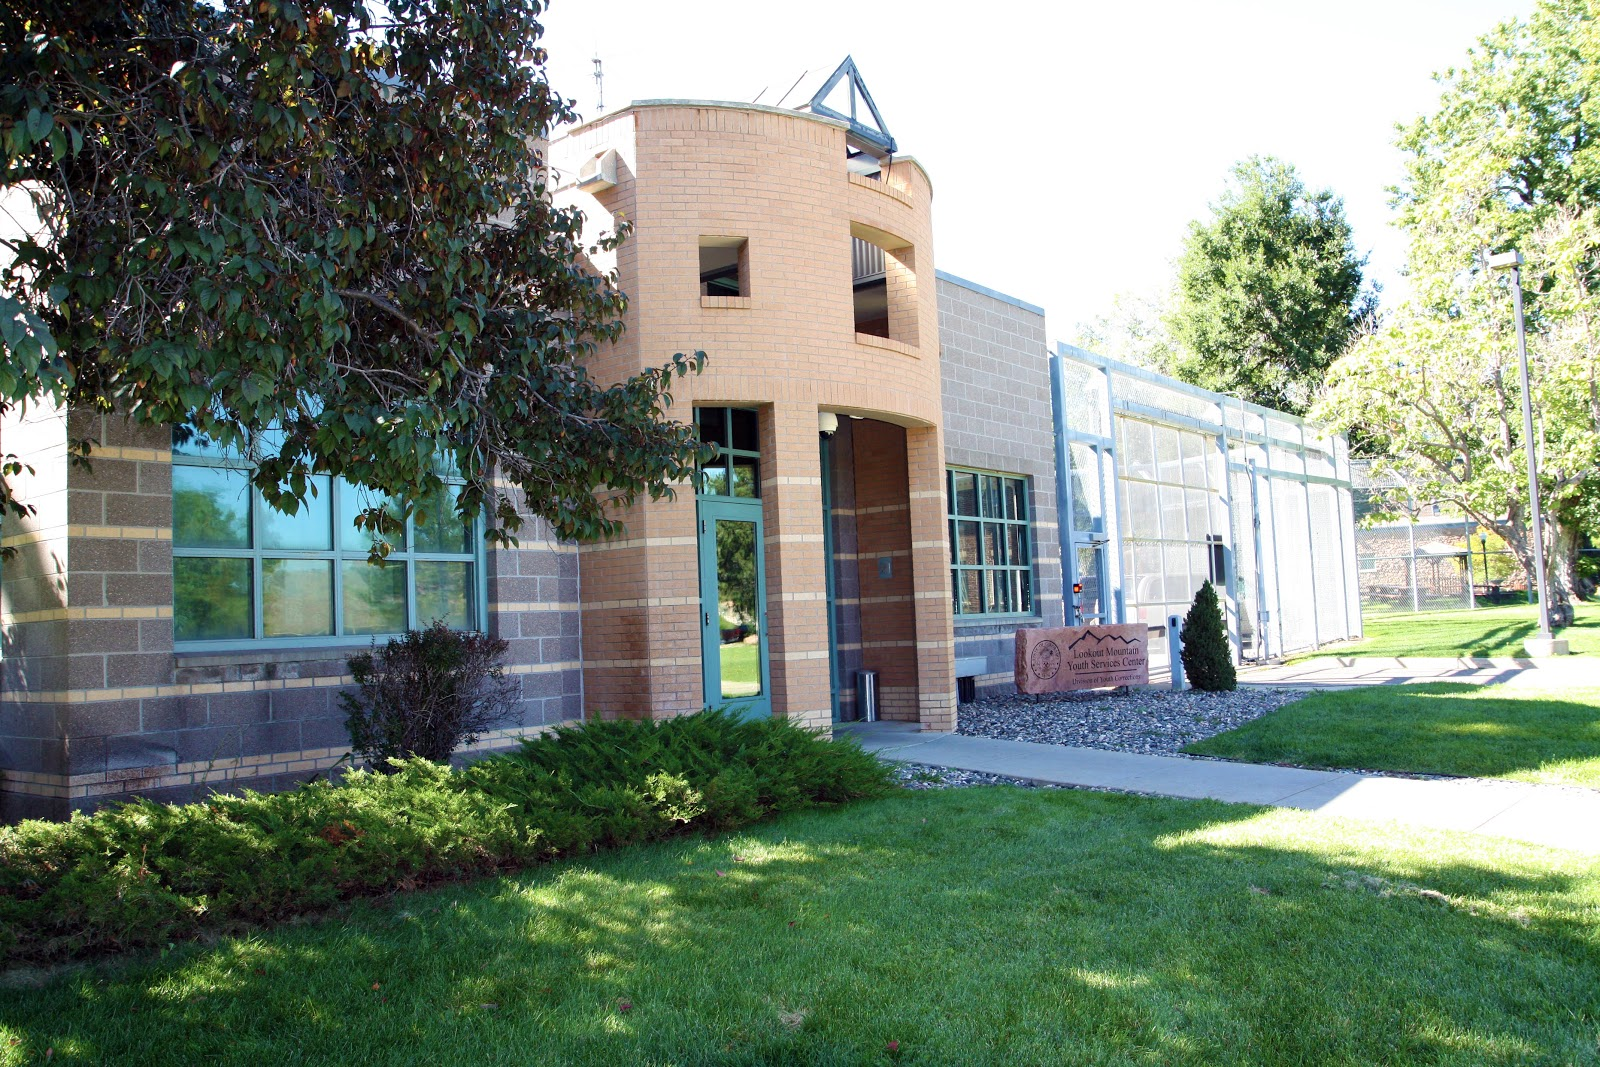 <p>Lookout Mountain Youth Services Center (LMYSC), located in Golden Colorado, is an intensive secure treatment program for 140 male juvenile offenders. </p>